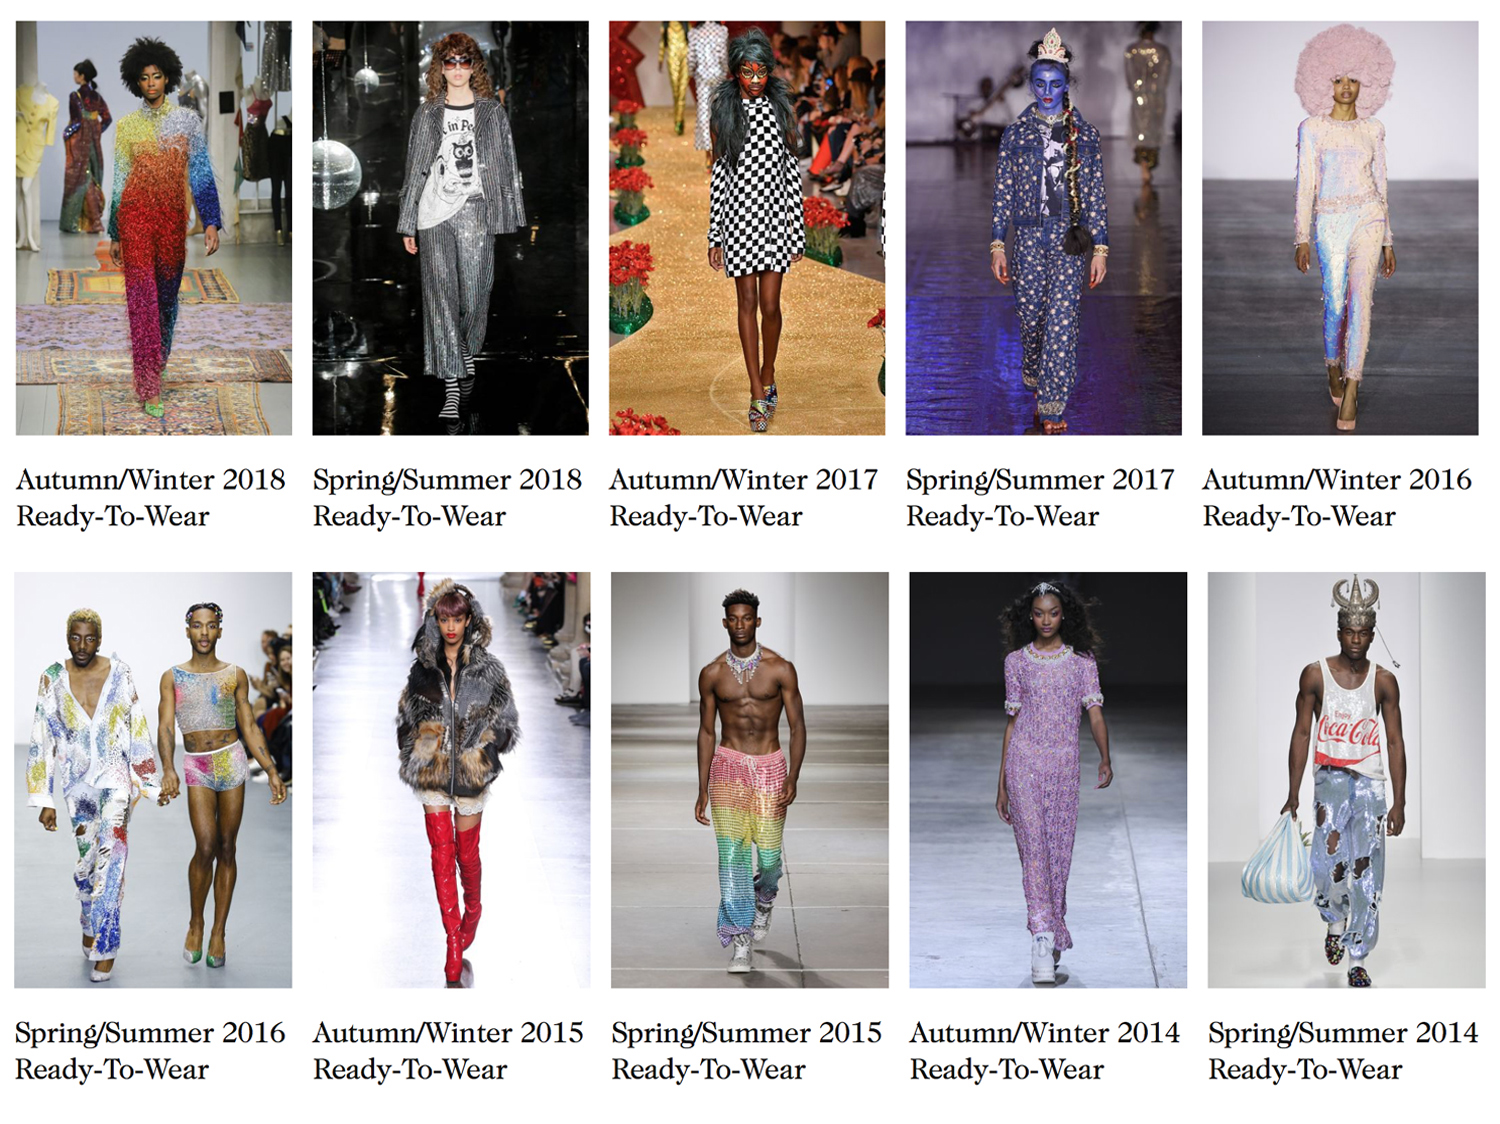 To date Ashish has shown at London Fashion Week 27 times, image via vogue.co.uk